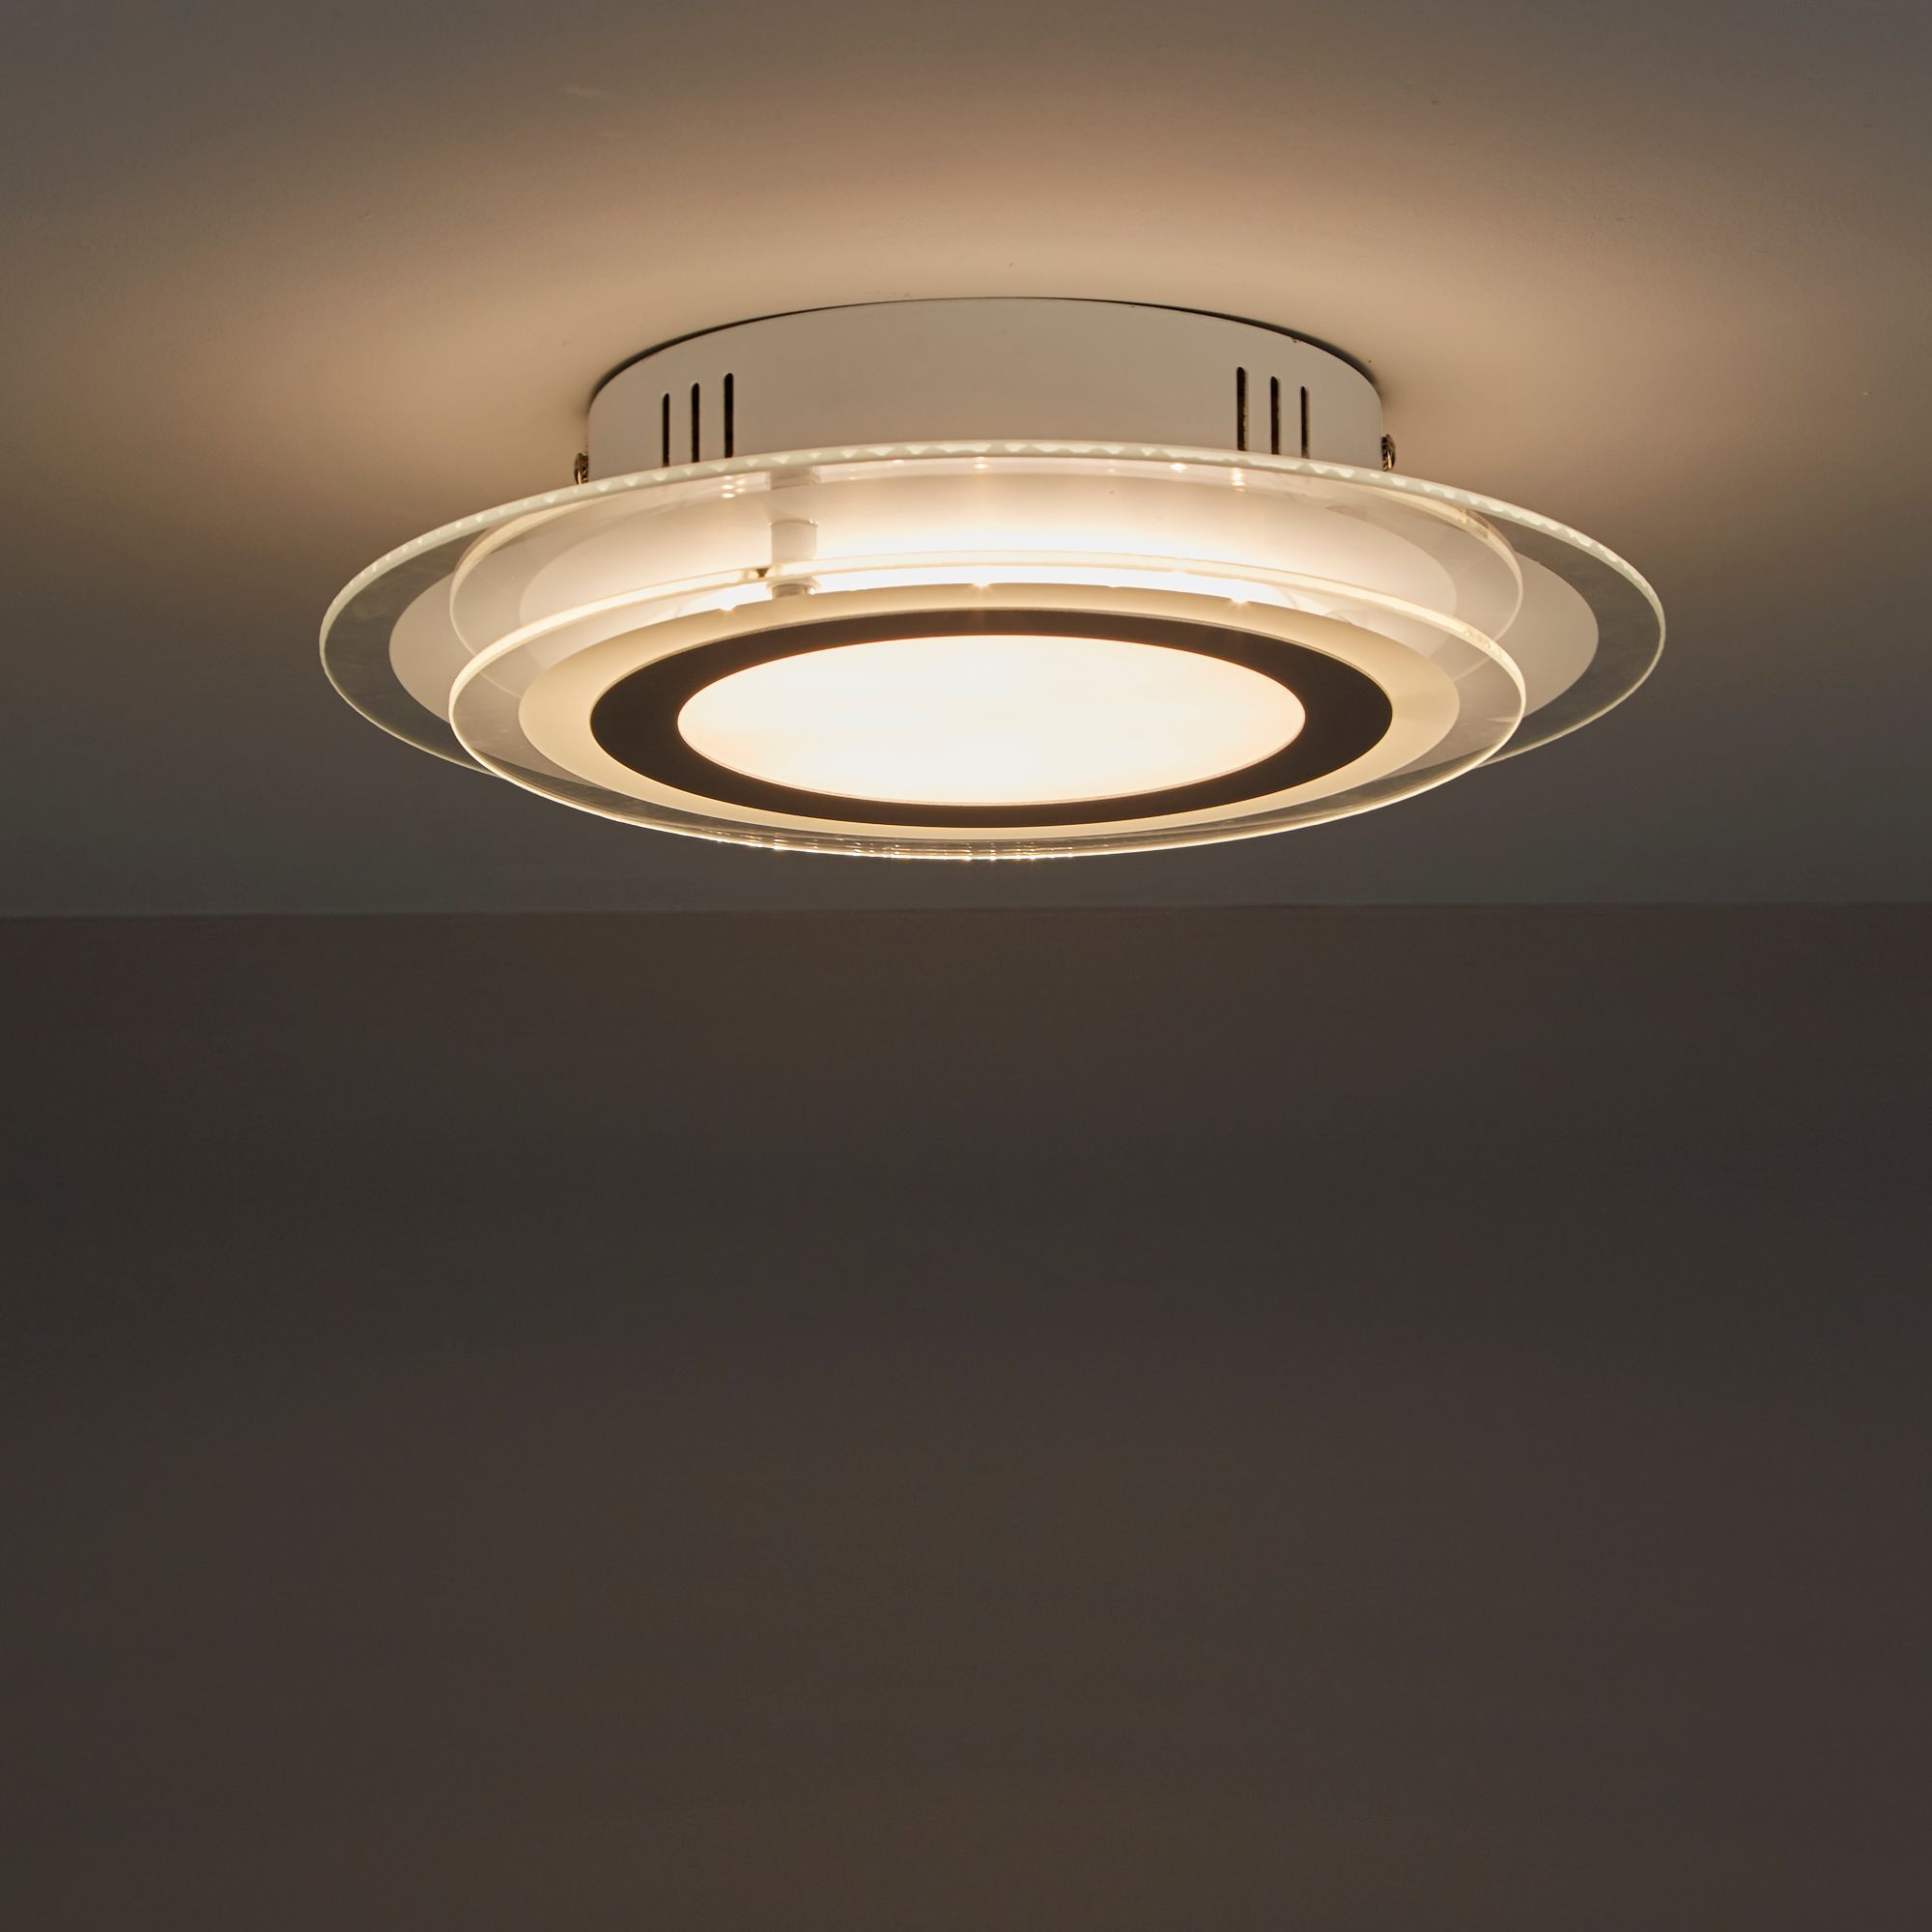 Borea White Ceiling Light